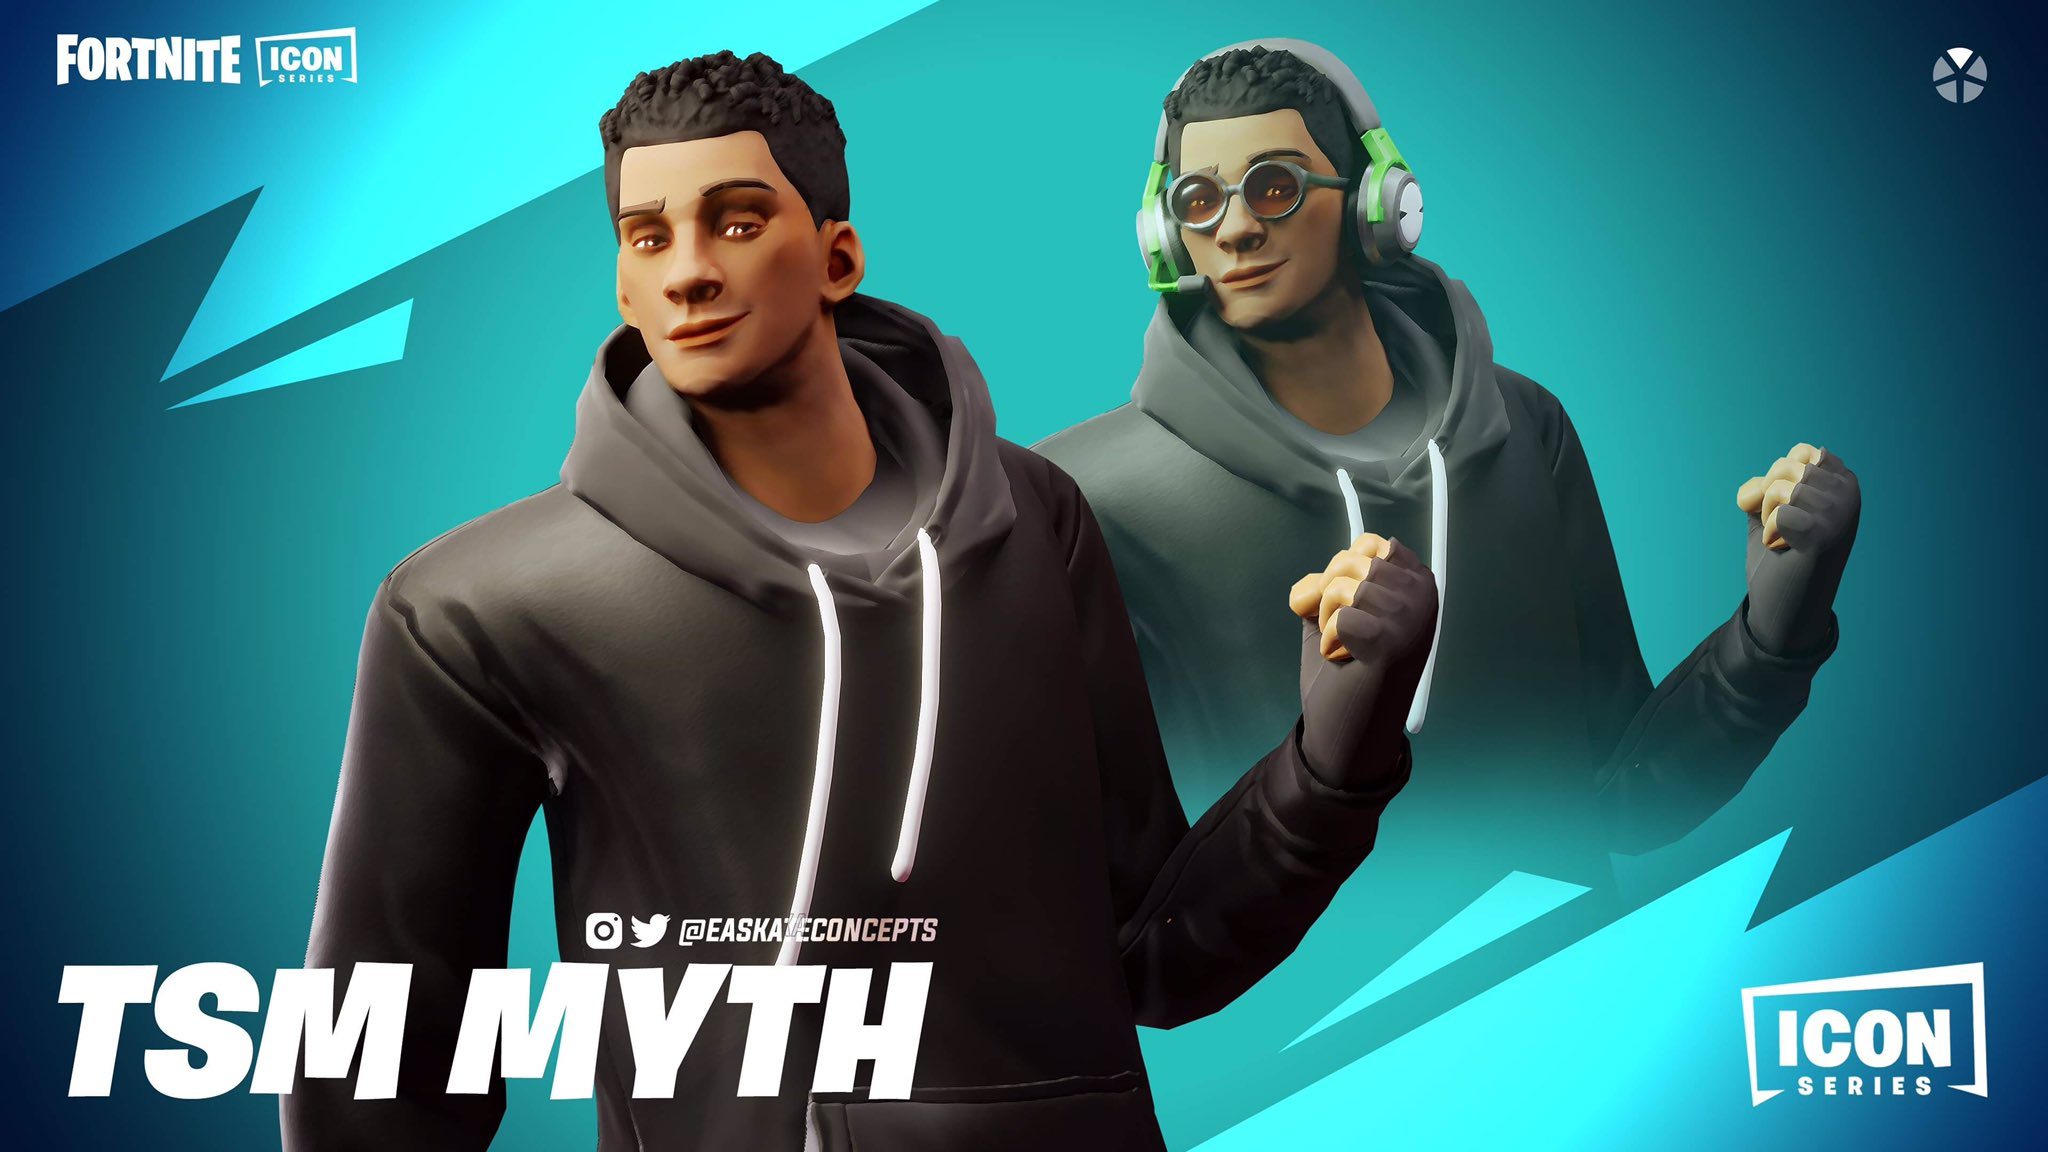 Ea On Twitter Fortnite Icon Series Tsm Myth Concept Introducing Myth The King Of Fall Damage And A Bonafide Fortnite Icon This Is A Skin I Wanted To Make Since Recreating Daequan